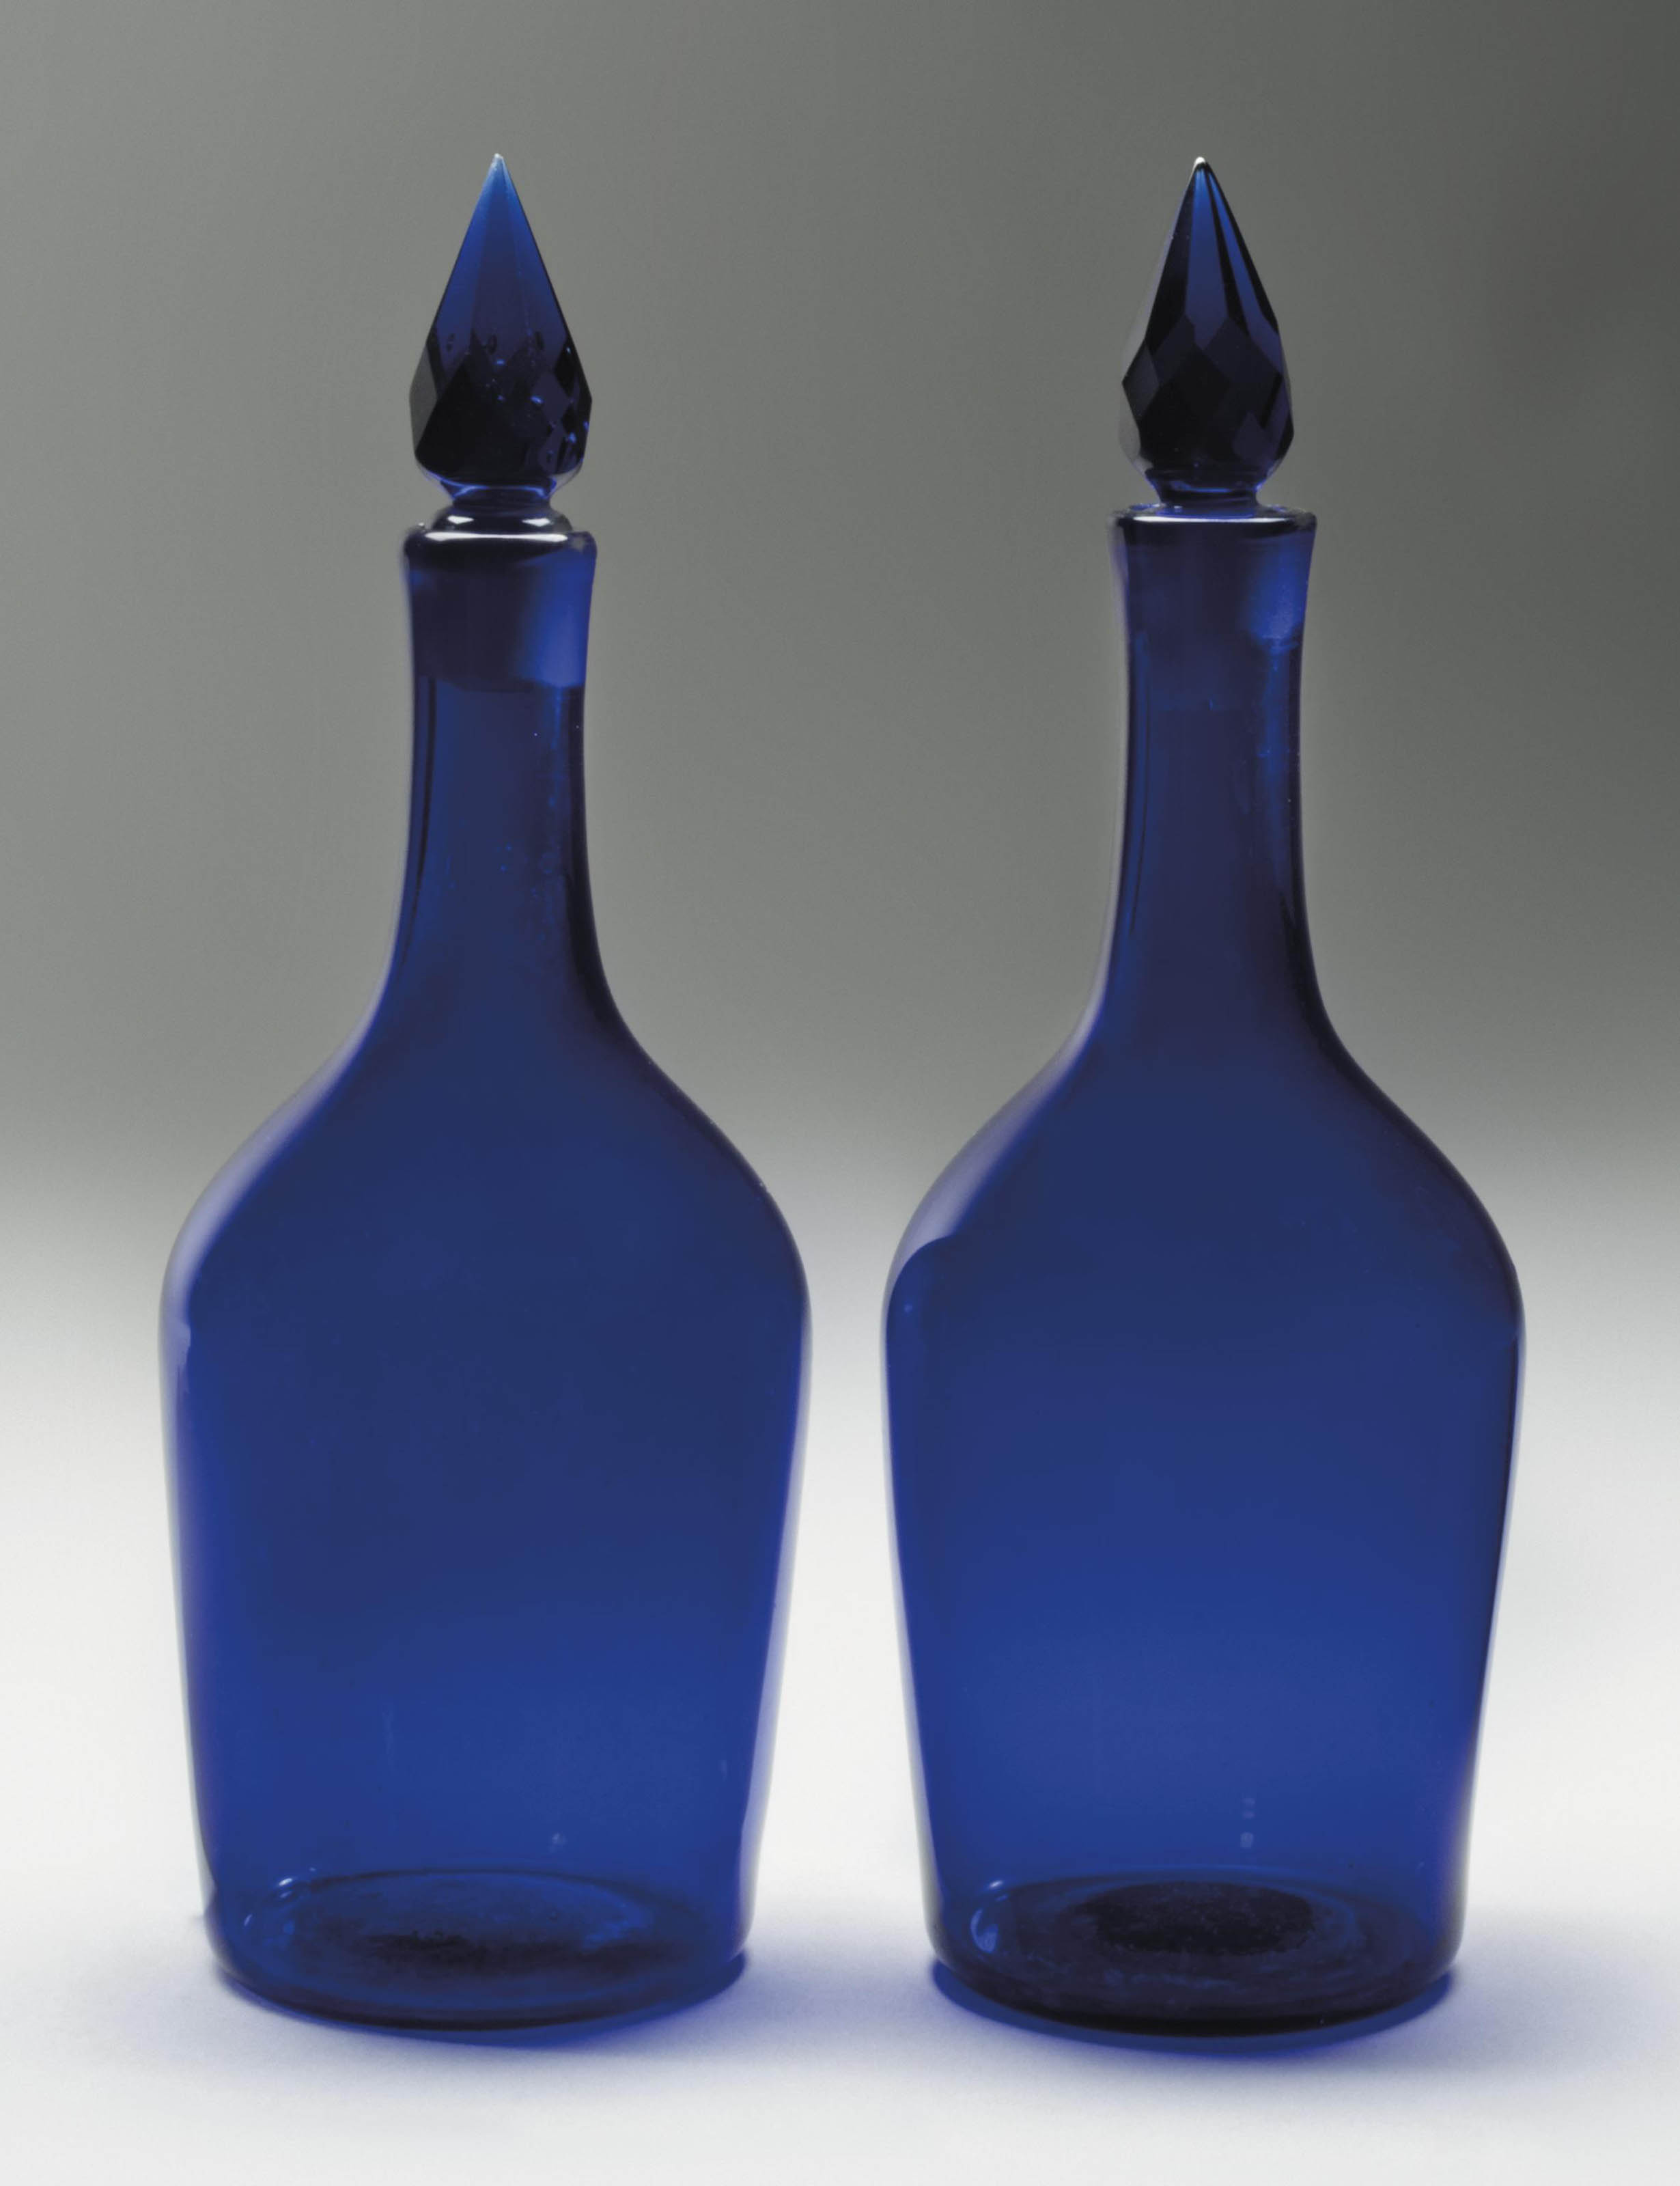 A PAIR OF BLUE GLASS CLUB-SHAPED DECANTERS AND STOPPERS